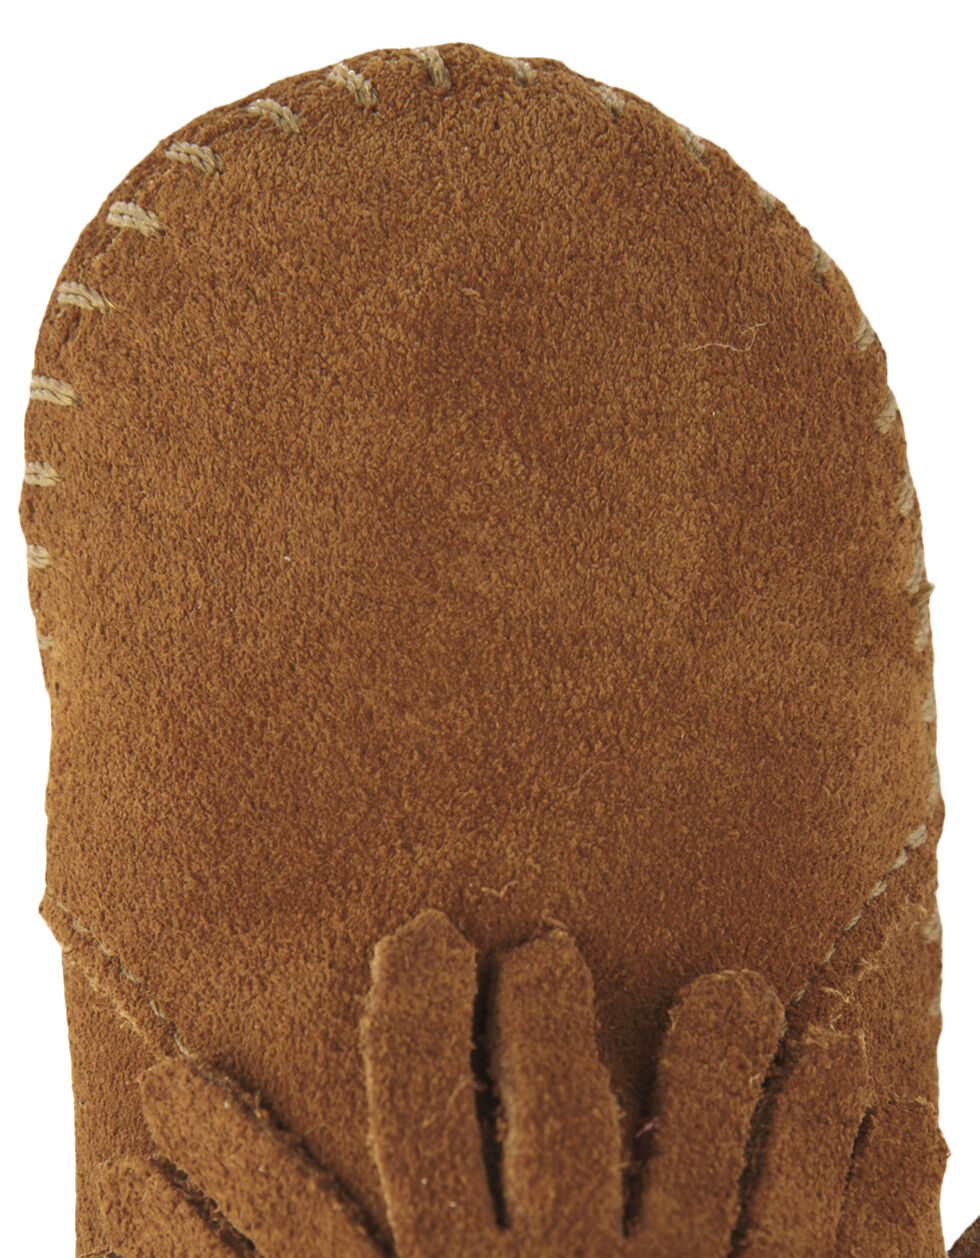 Minnetonka Infant Girls' Suede with Fringe Velcro Back Flap Bootie, Brown, hi-res